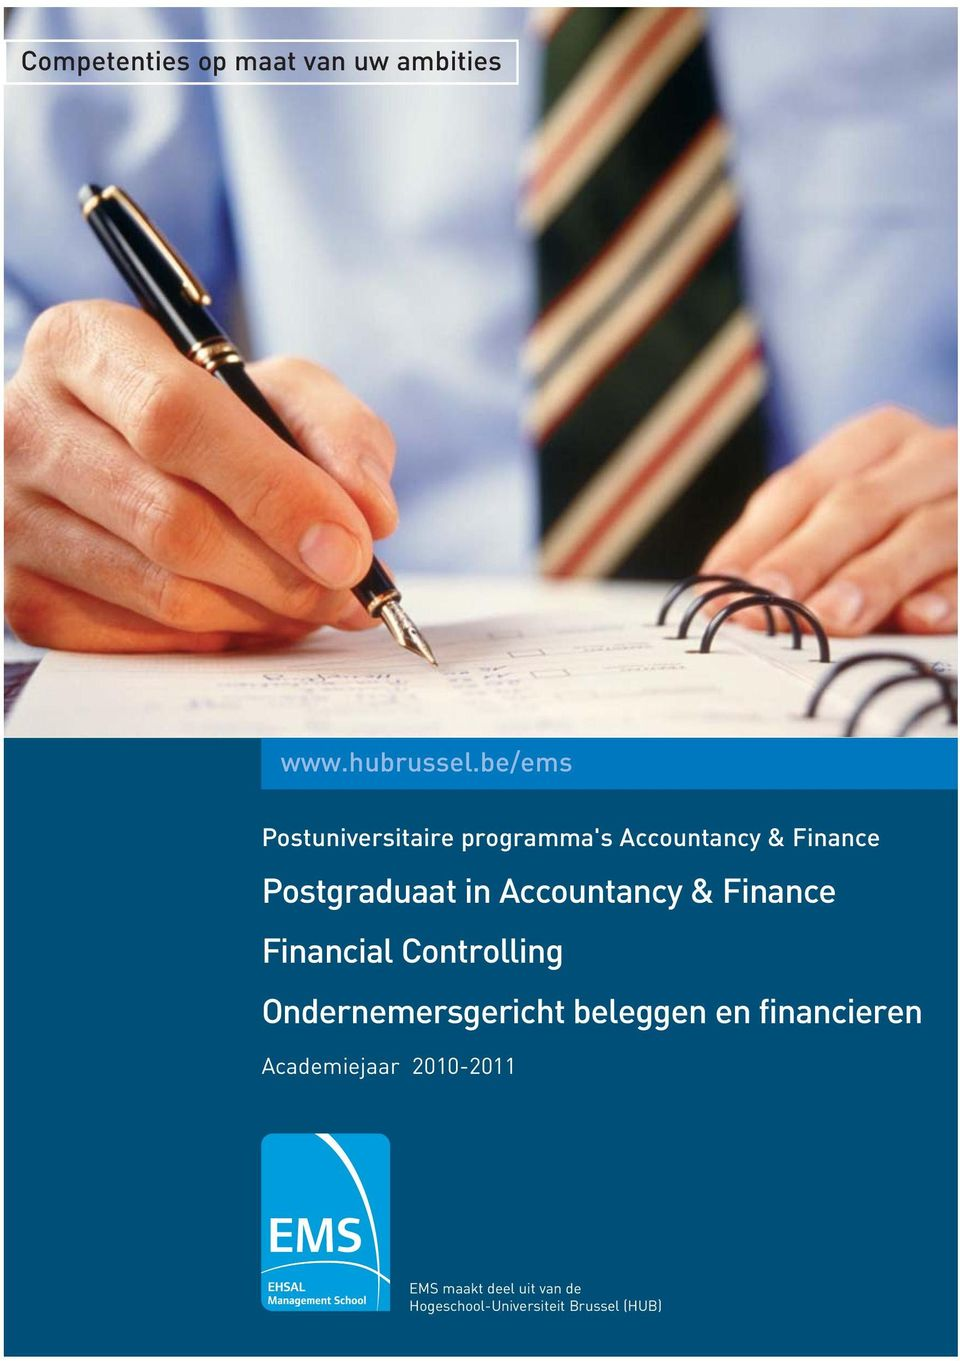 Accountancy & Finance Financial Controlling Ondernemersgericht beleggen en